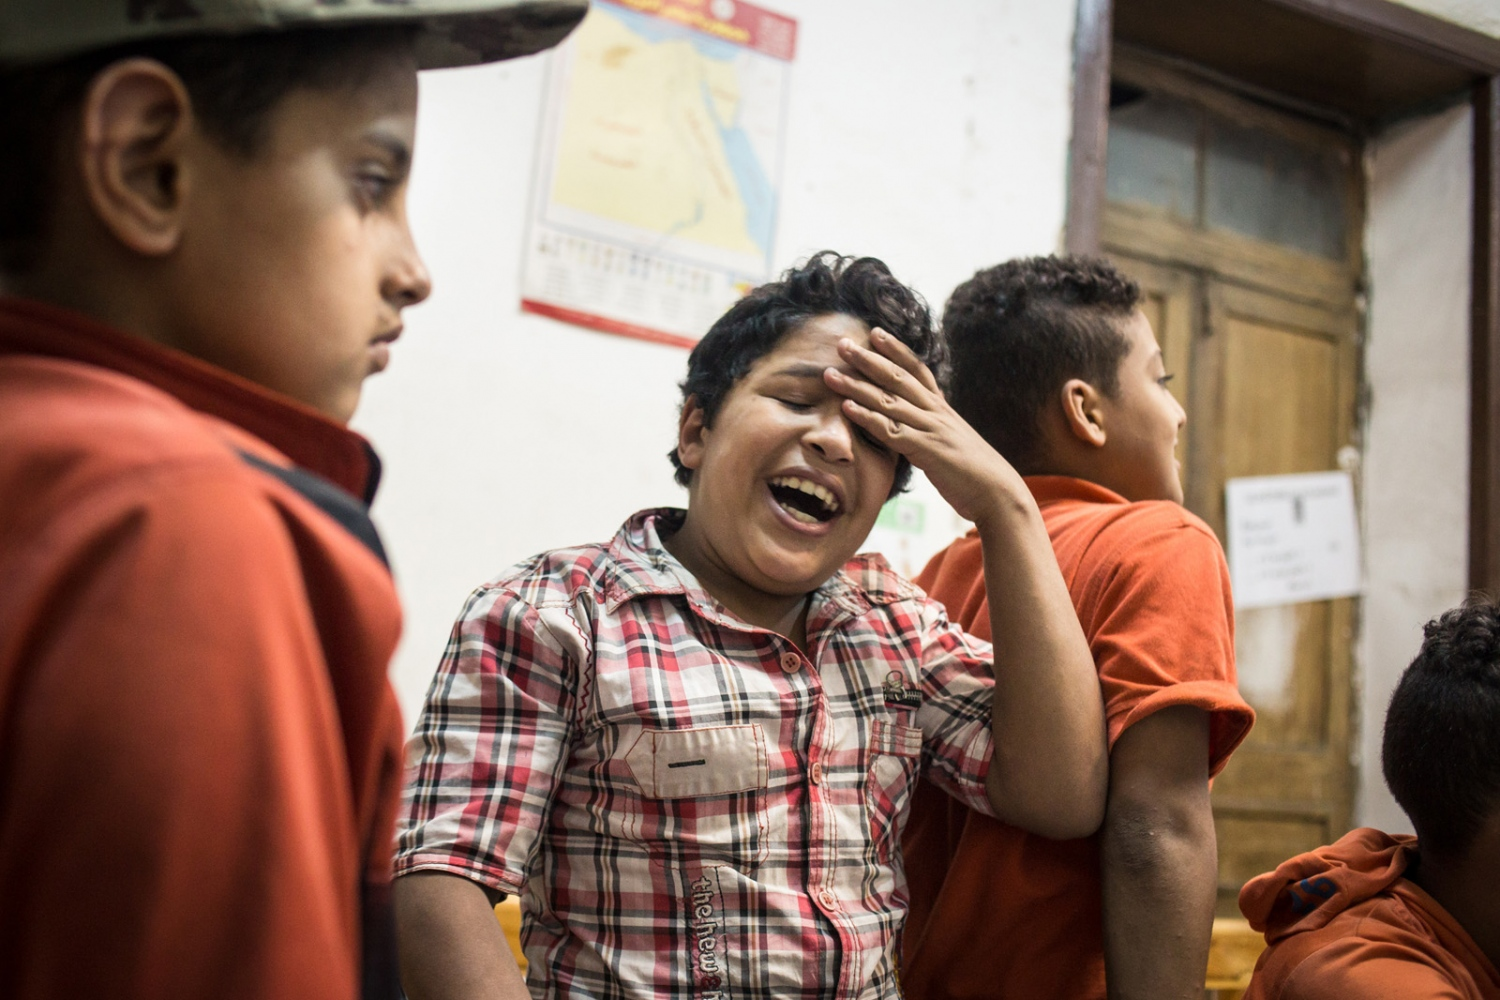 p.p1 {margin: 0.0px 0.0px 0.0px 0.0px; font: 10.0px 'Lucida Grande'} Students reacting after guessing the wrong number during a game in French class. Mish Madrasa is a grassroots volunteer group that provides tutoring and after school activities to poor children in Saft el Laban, a slum neighborhood of Cairo.